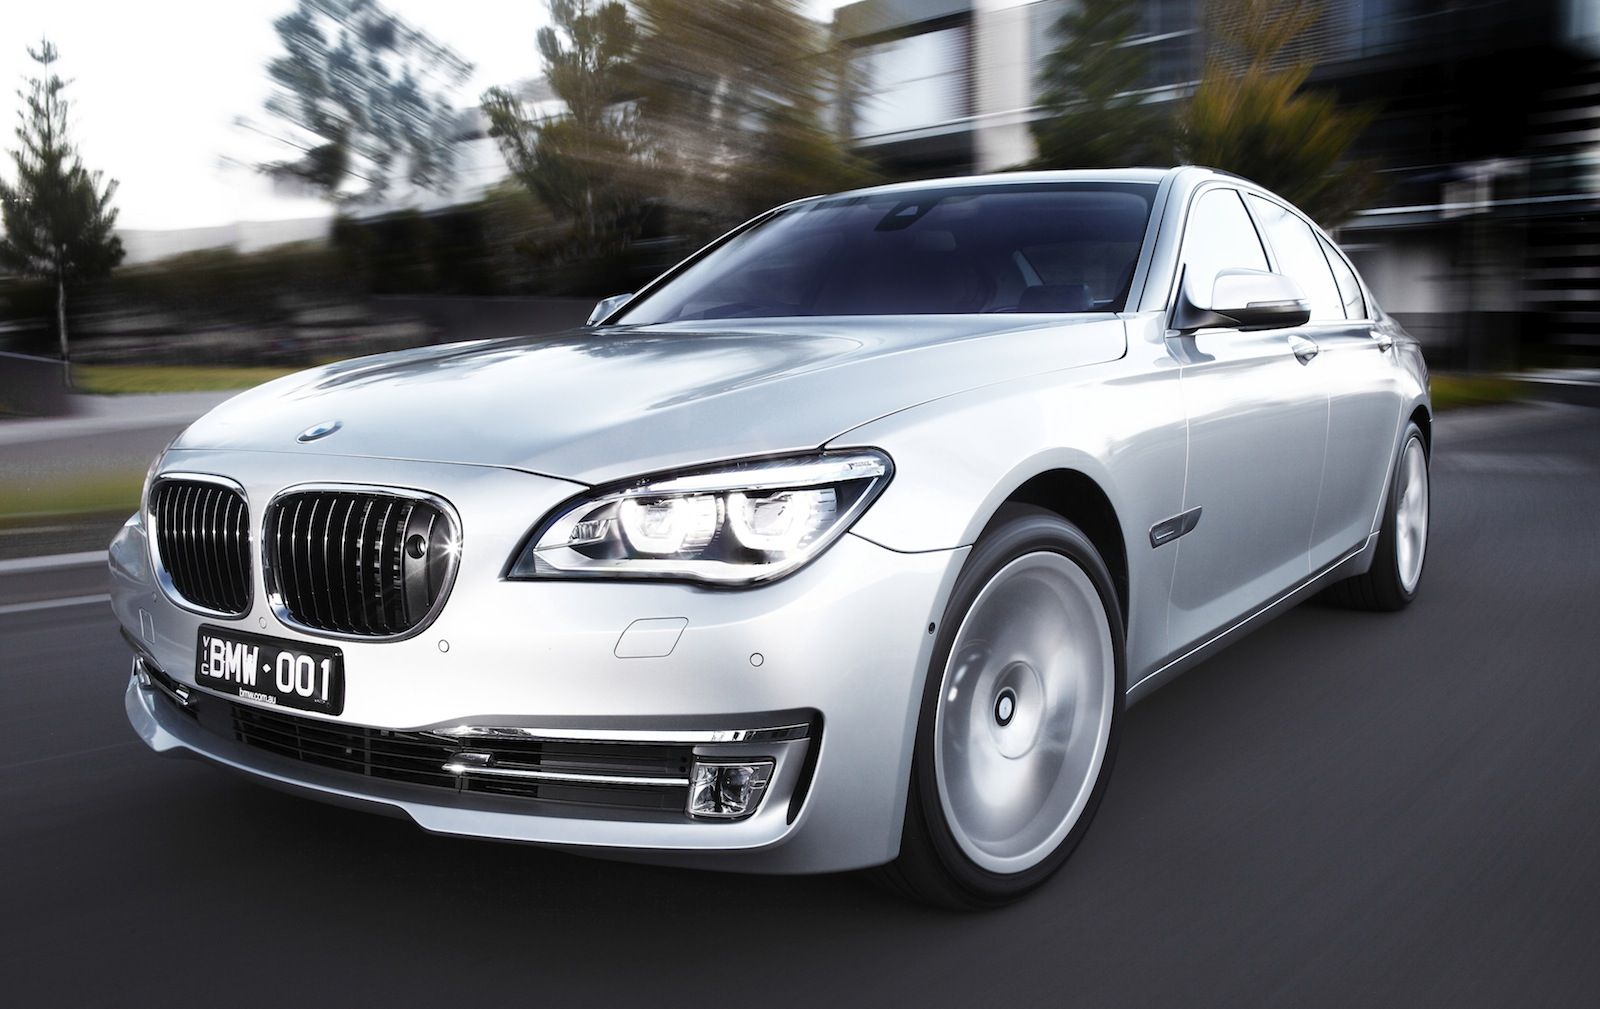 2013 bmw 7 series pricing and specifications photos 1 of 17 - 2013 bmw 335i coupe specs ...